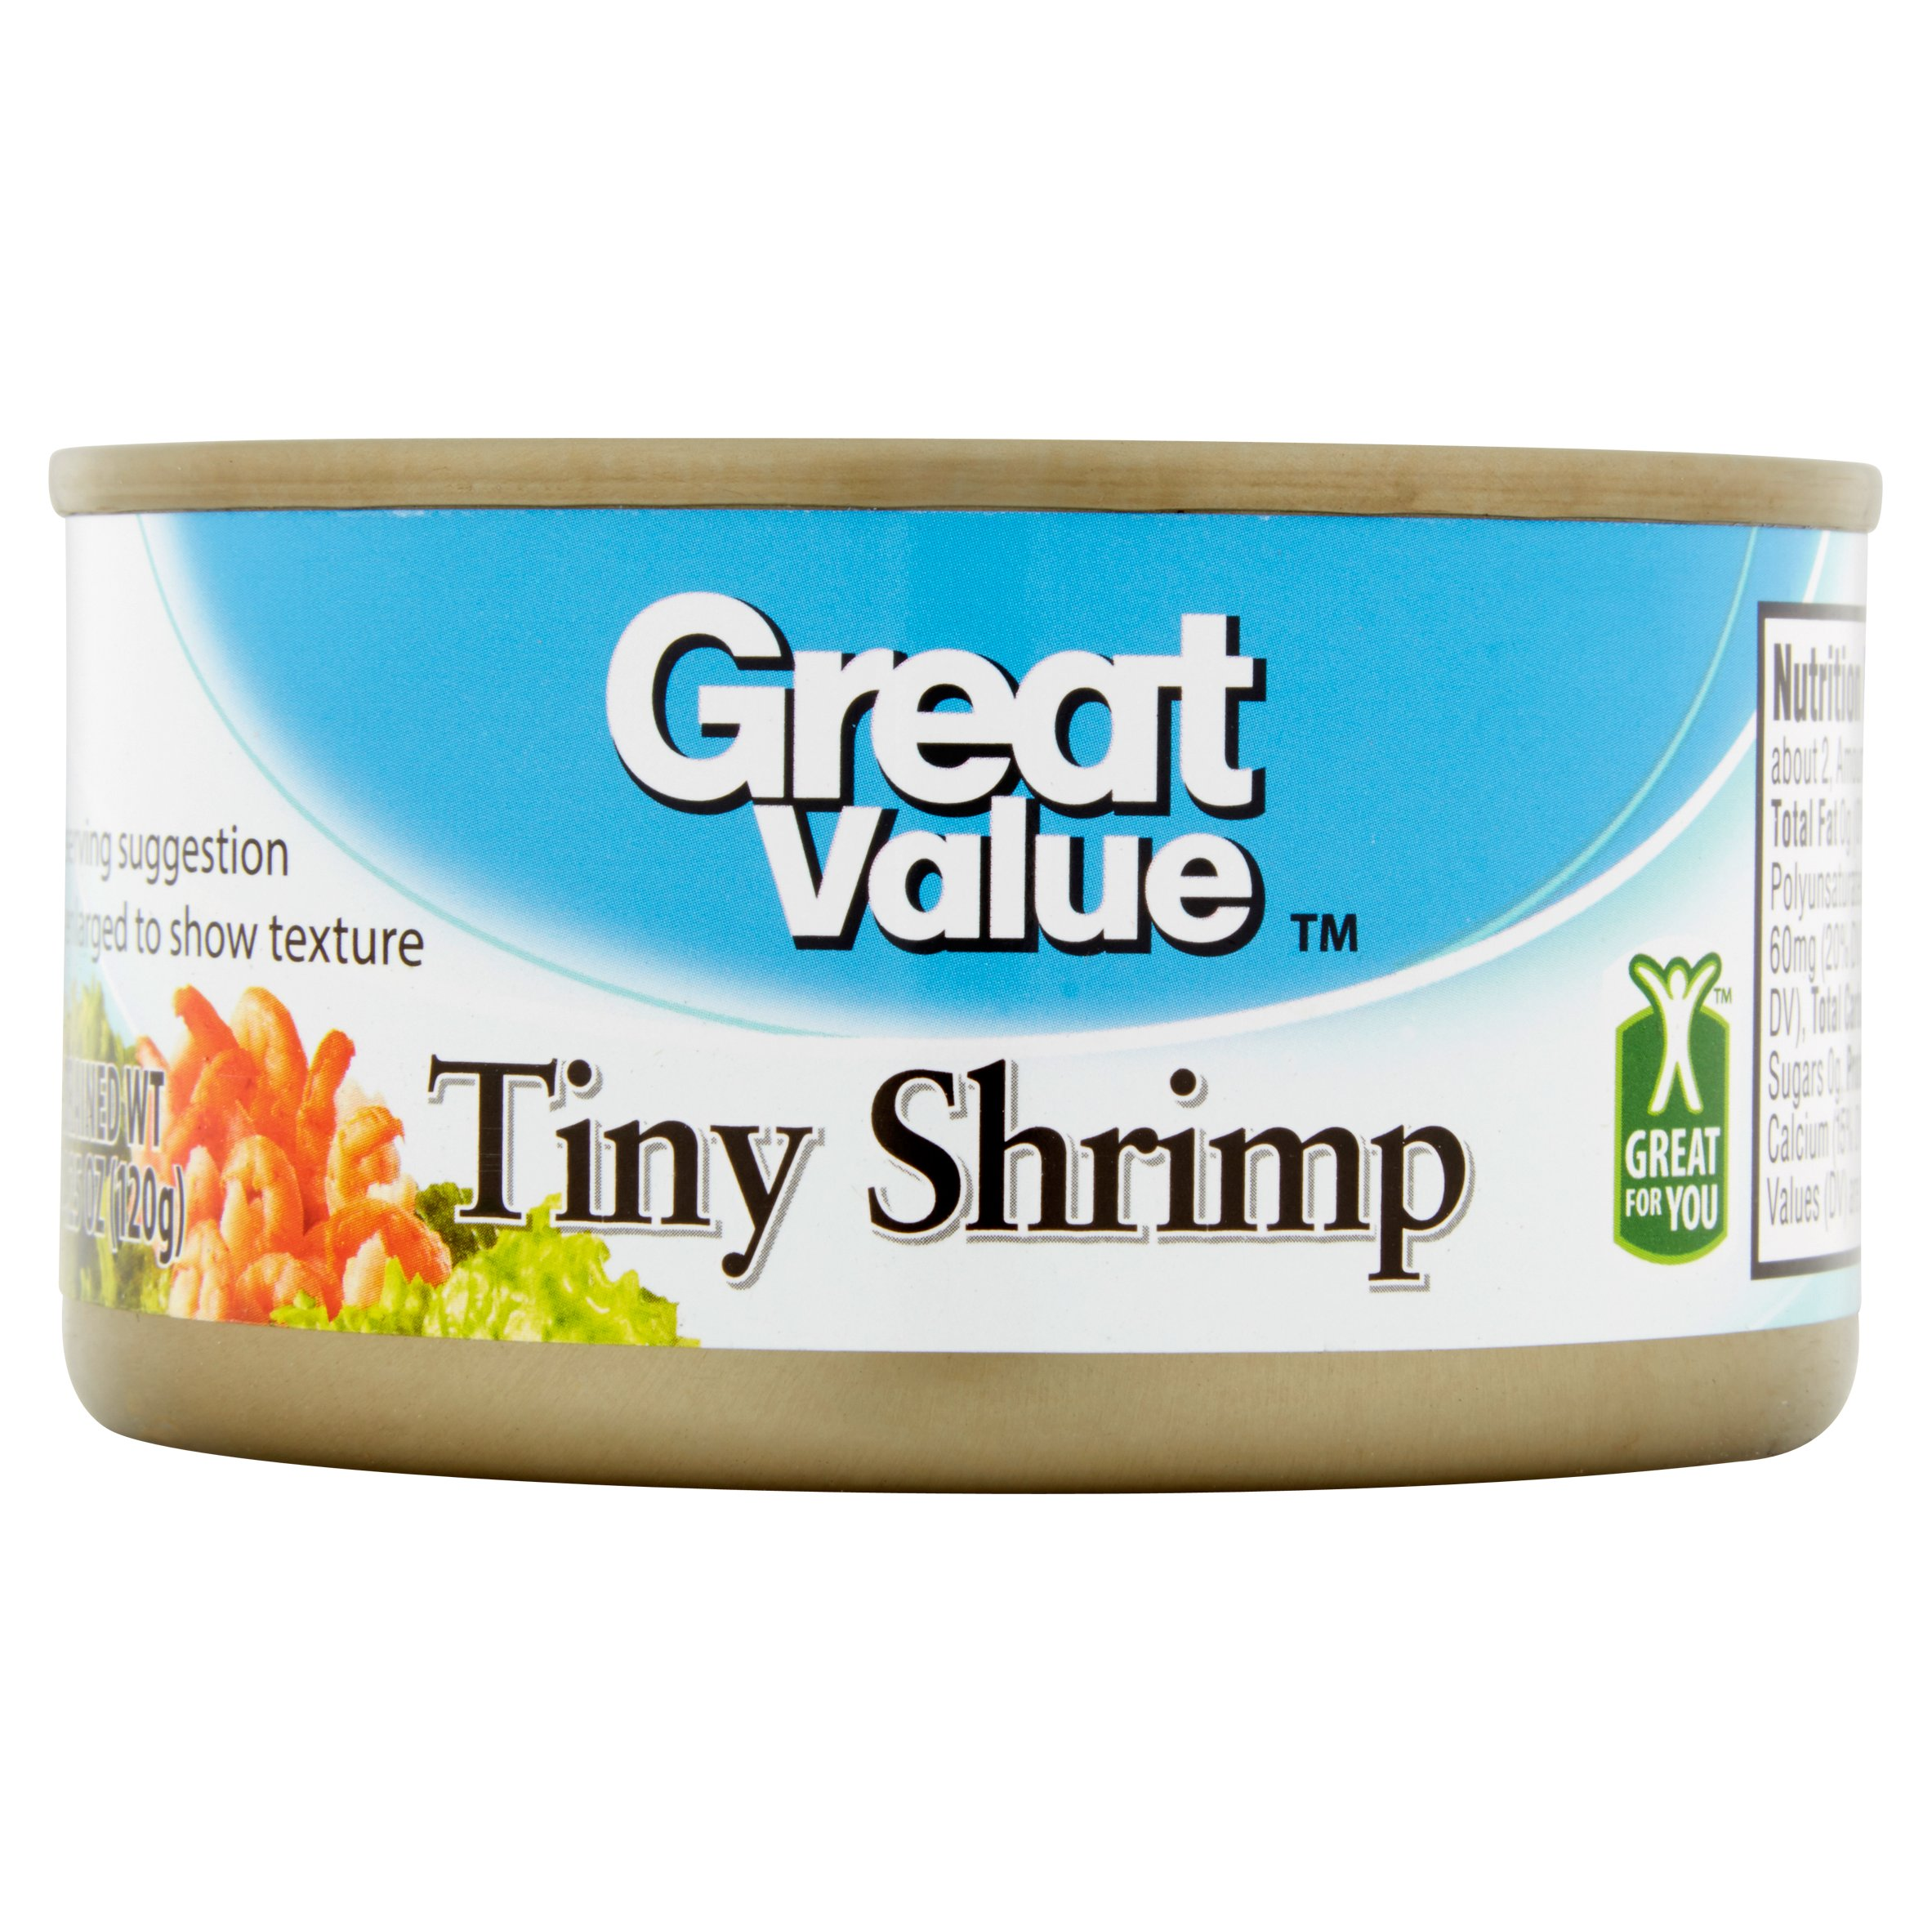 Great Value Tiny Shrimp, 4.25 oz by Wal-Mart Stores, Inc.